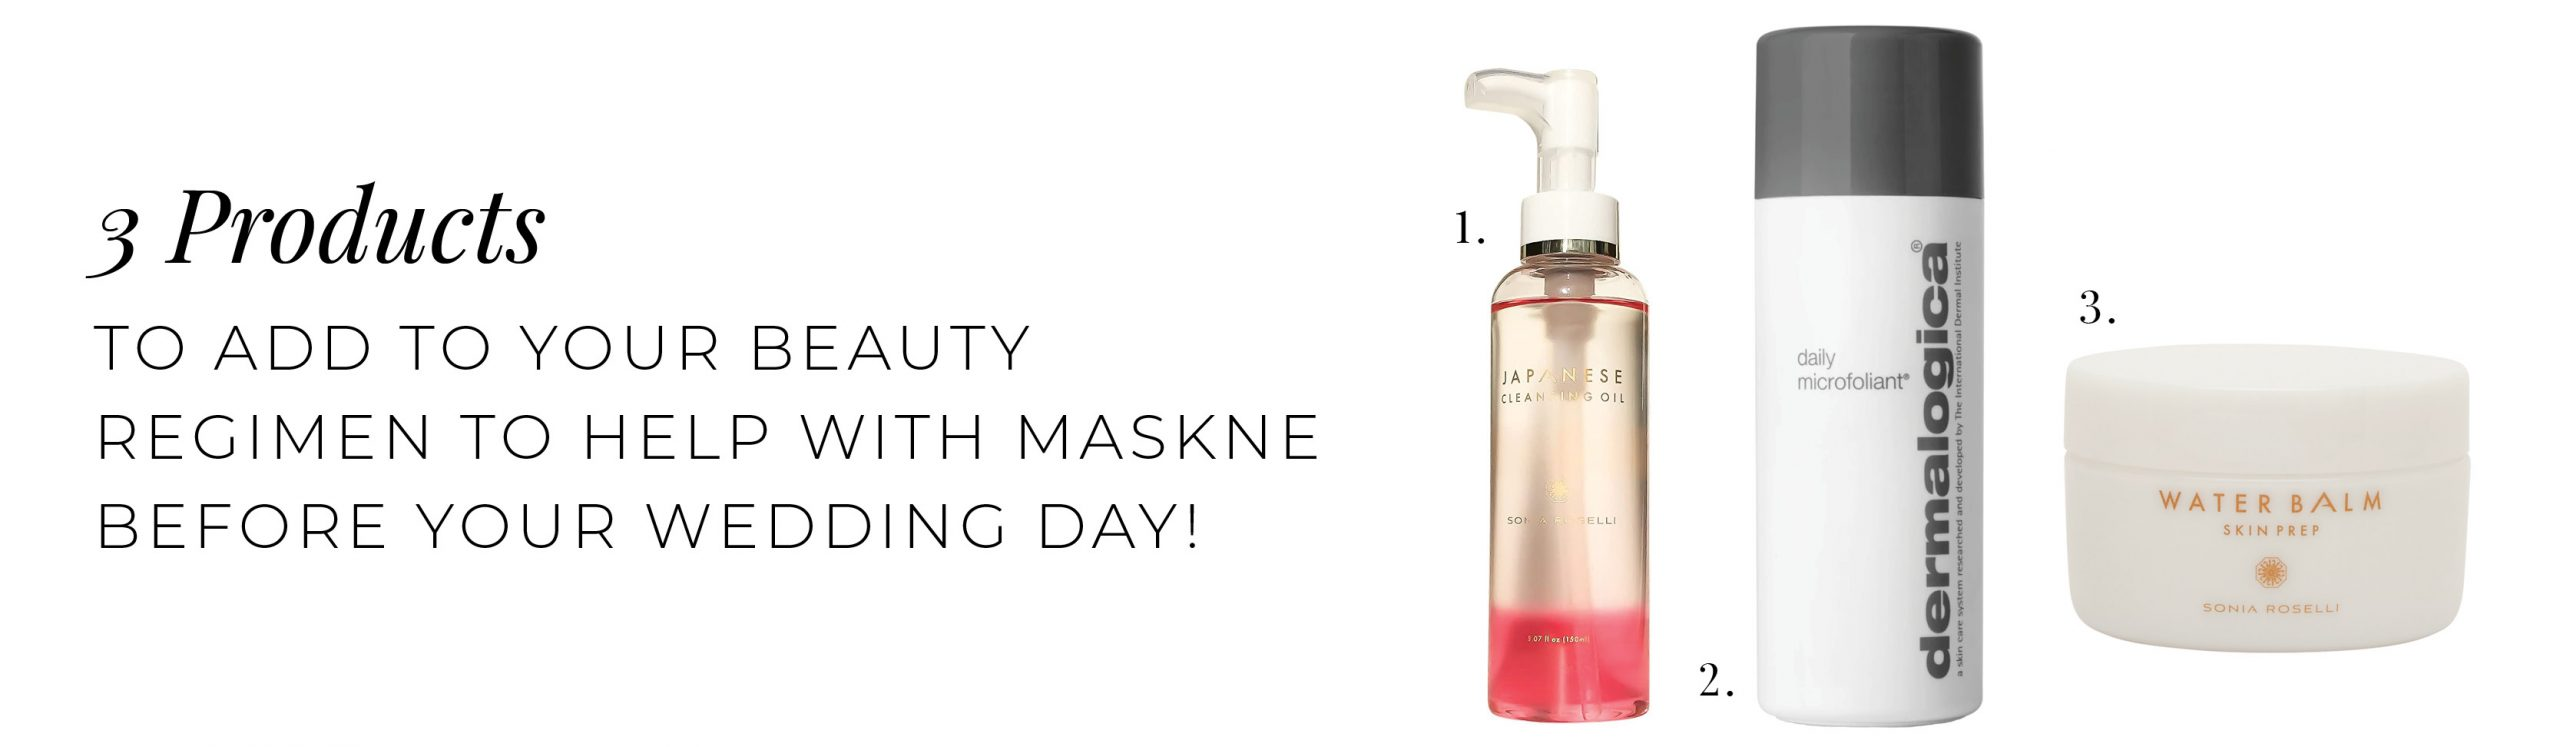 maskne   products to use to prevent acne